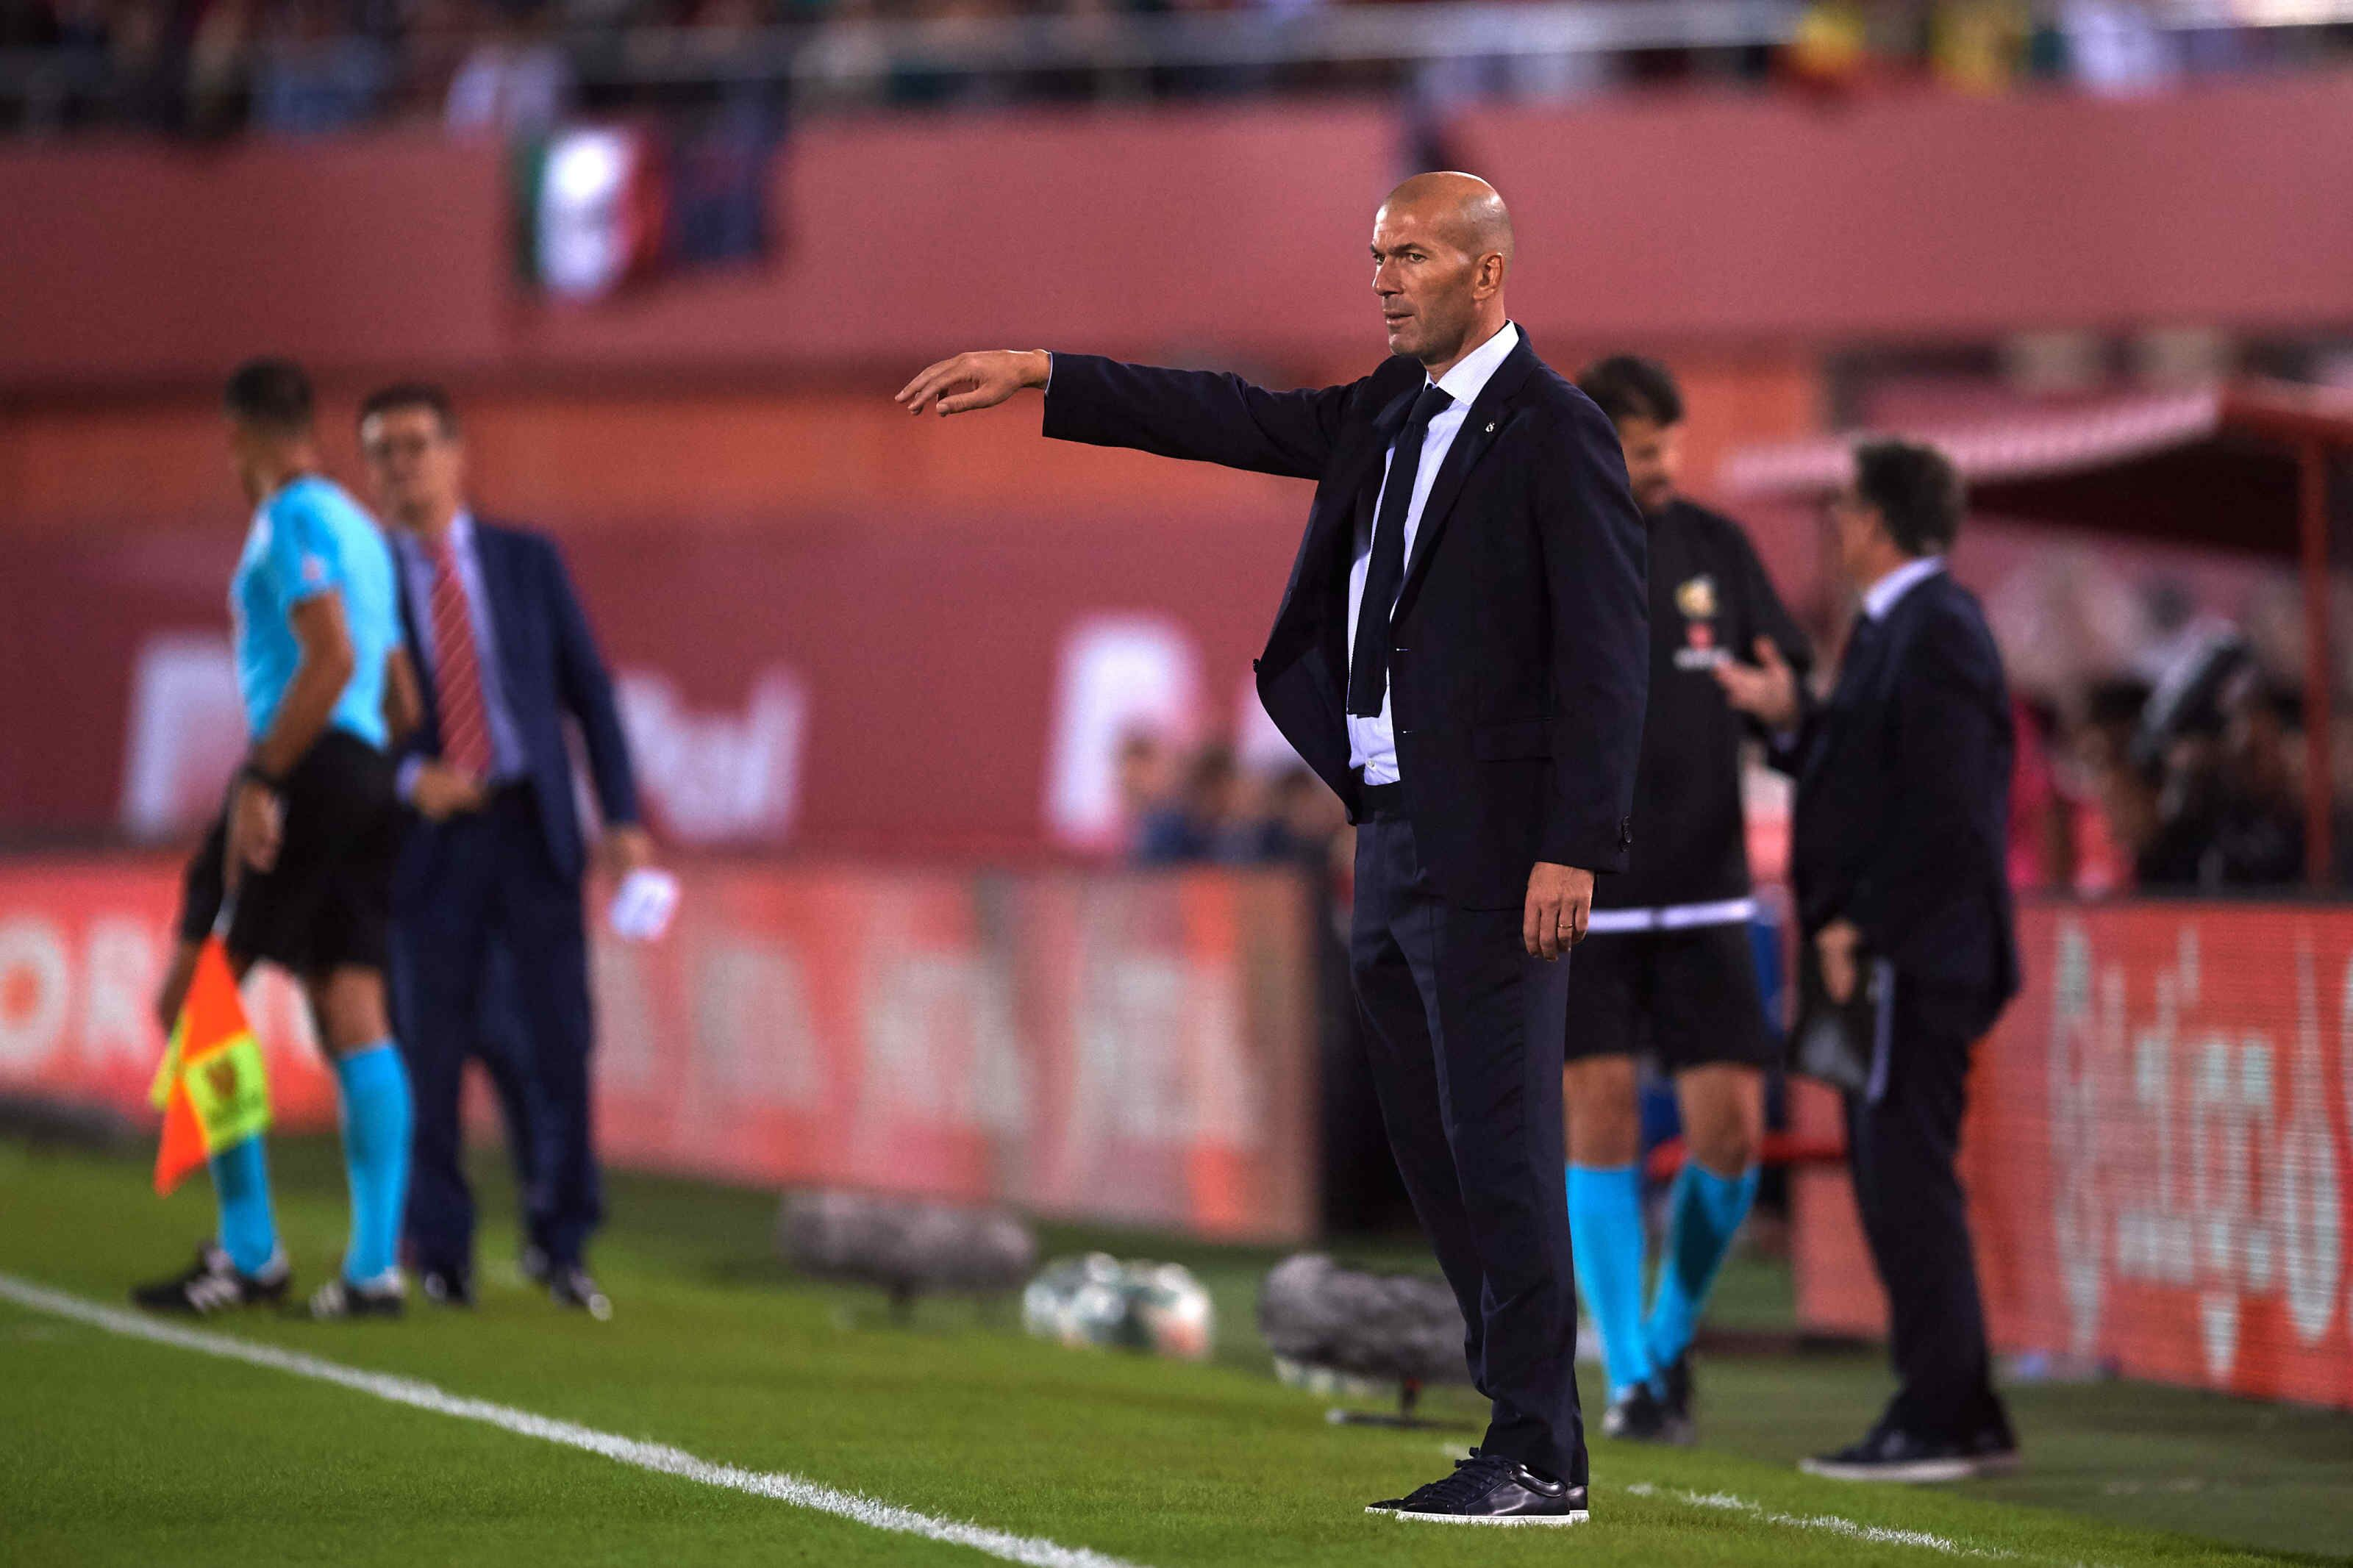 Real Madrid deserved to lose to Mallorca after listless performance